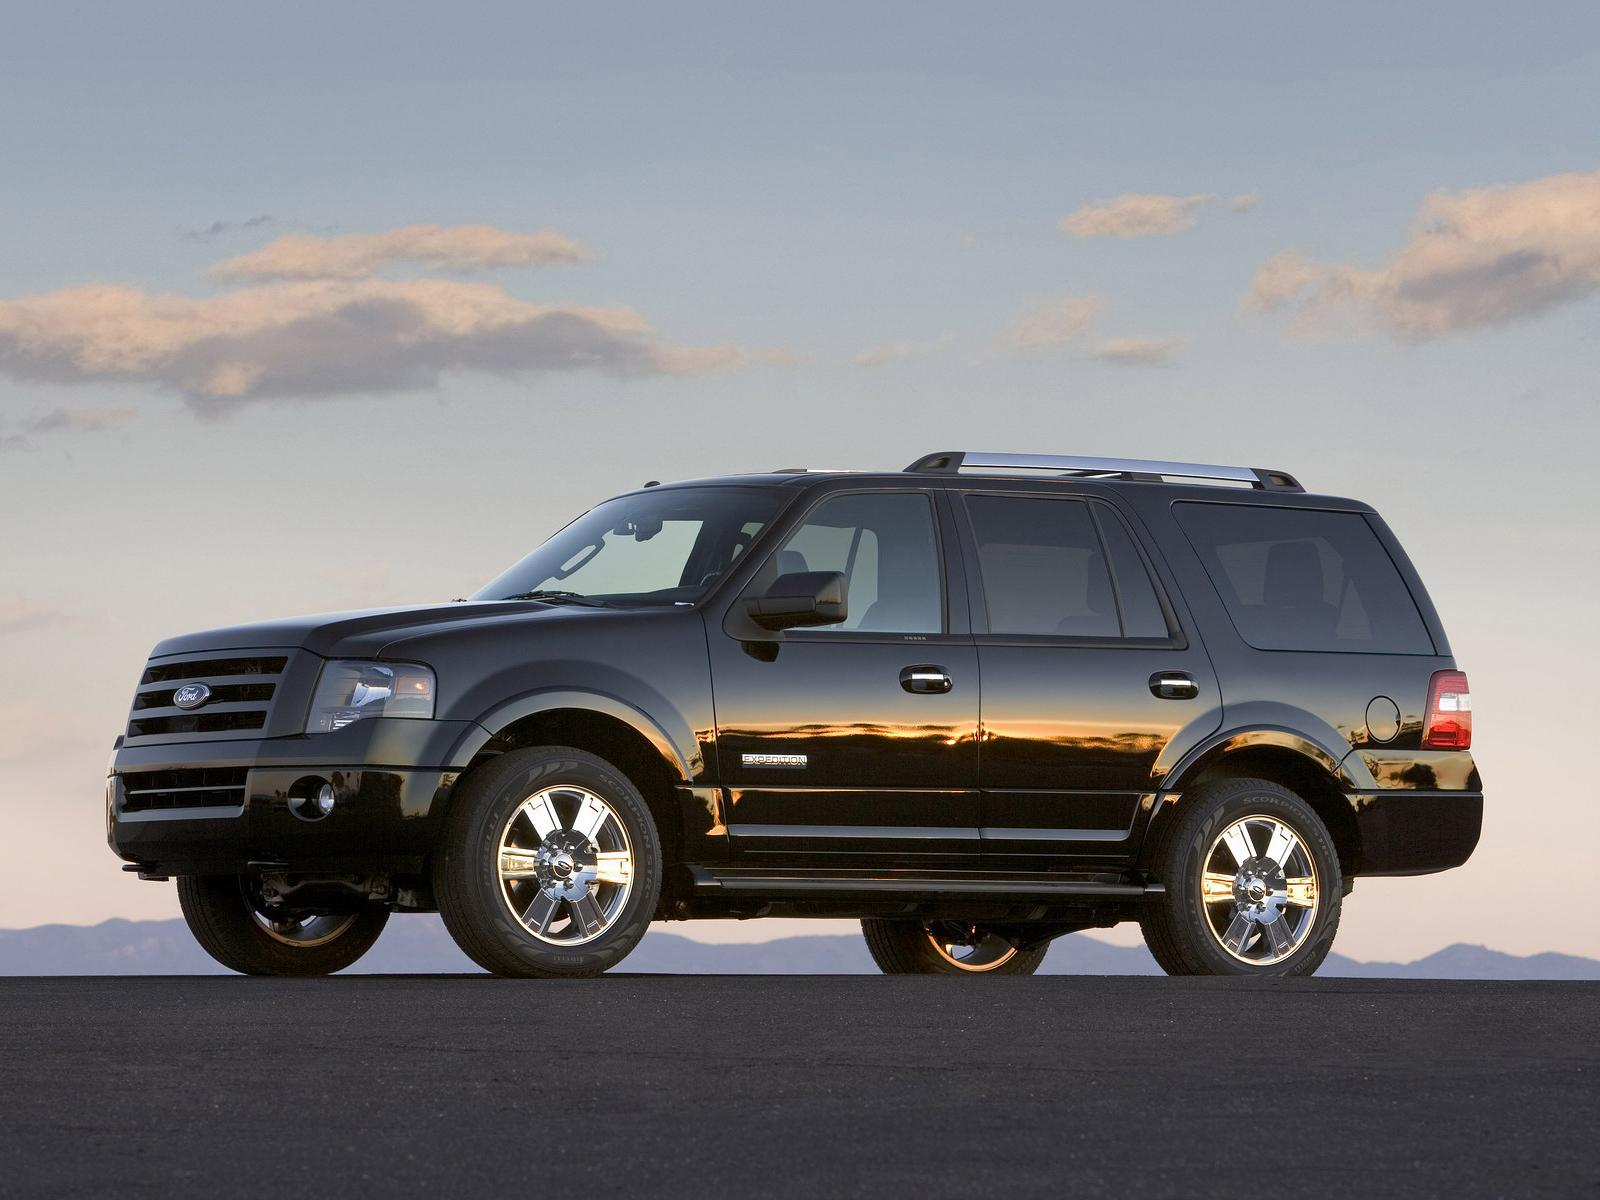 Ford Expedition photo 31624